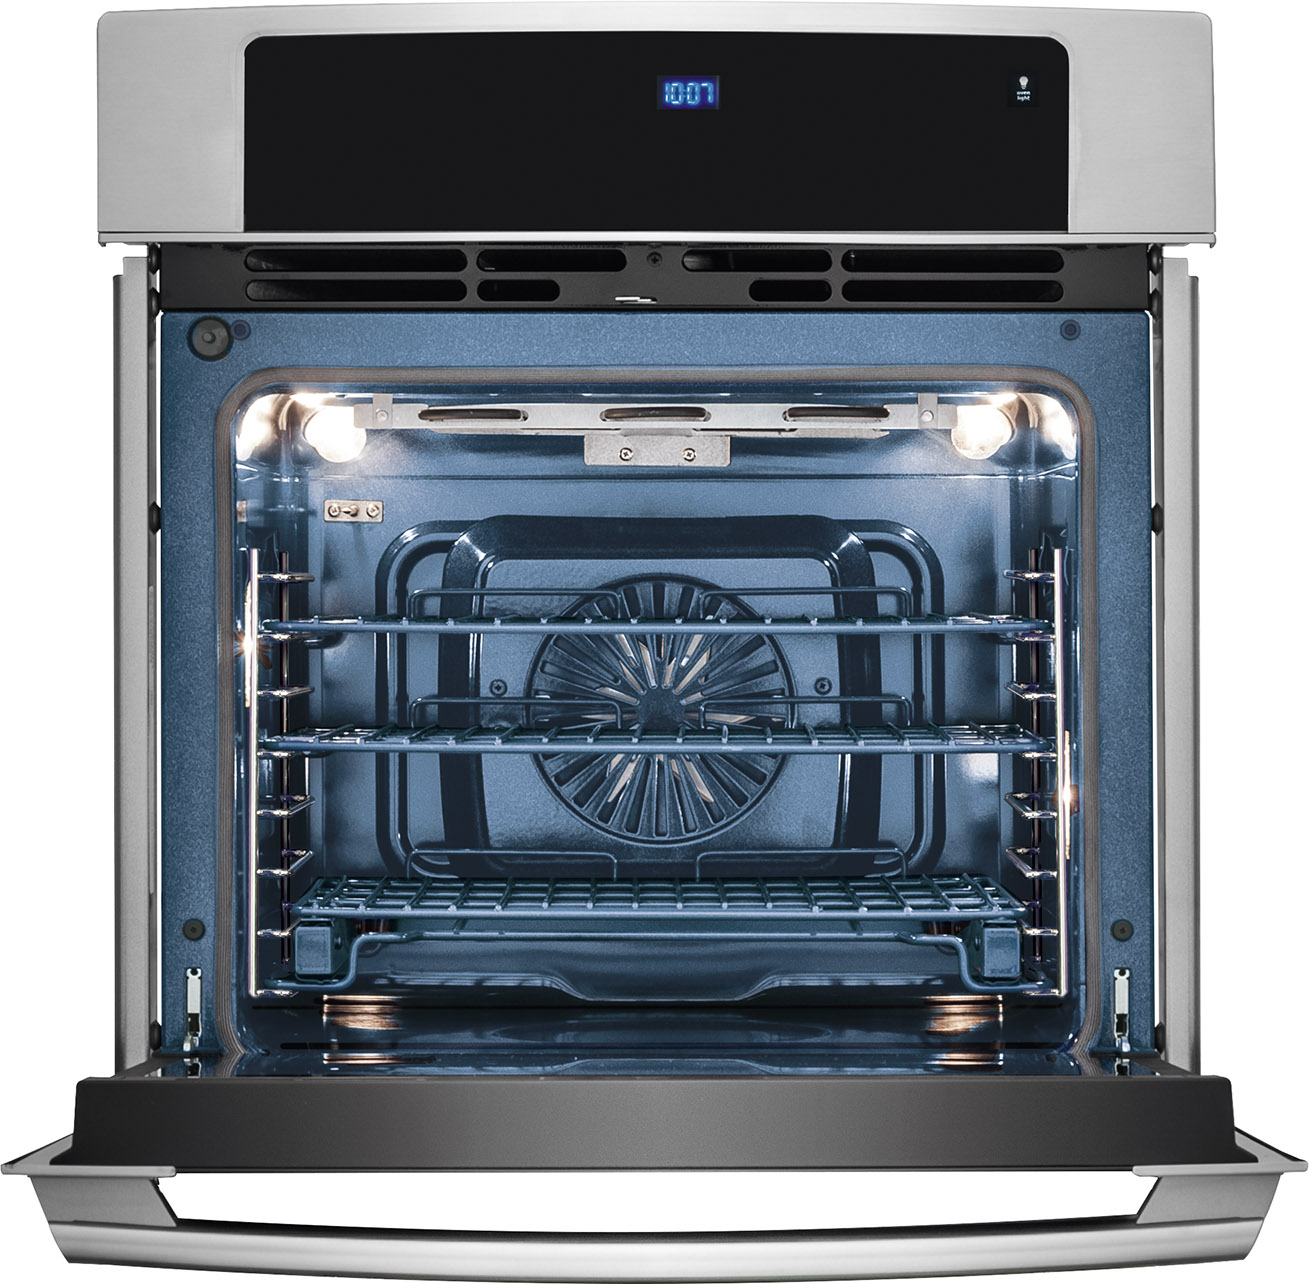 Electrolux 27 Built In Electric Single Oven Stainless Steel Ew27ew55ps Hunter Src Wiring Diagram Features